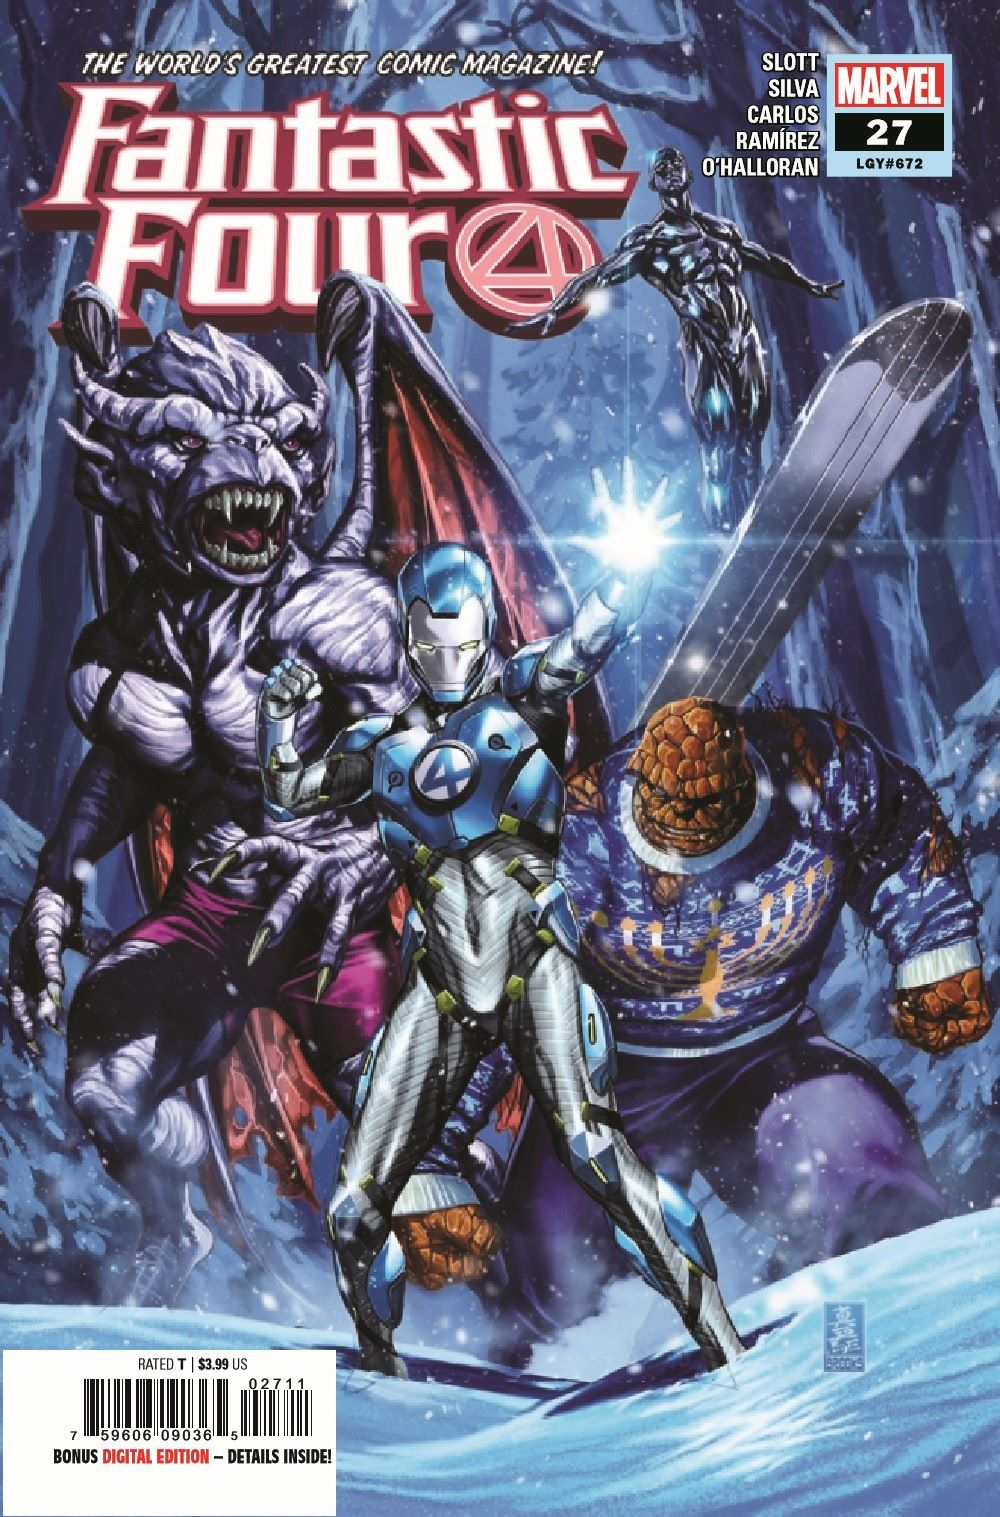 FF2018027_Preview-1 ComicList: New Comic Book Releases List for 12/16/2020